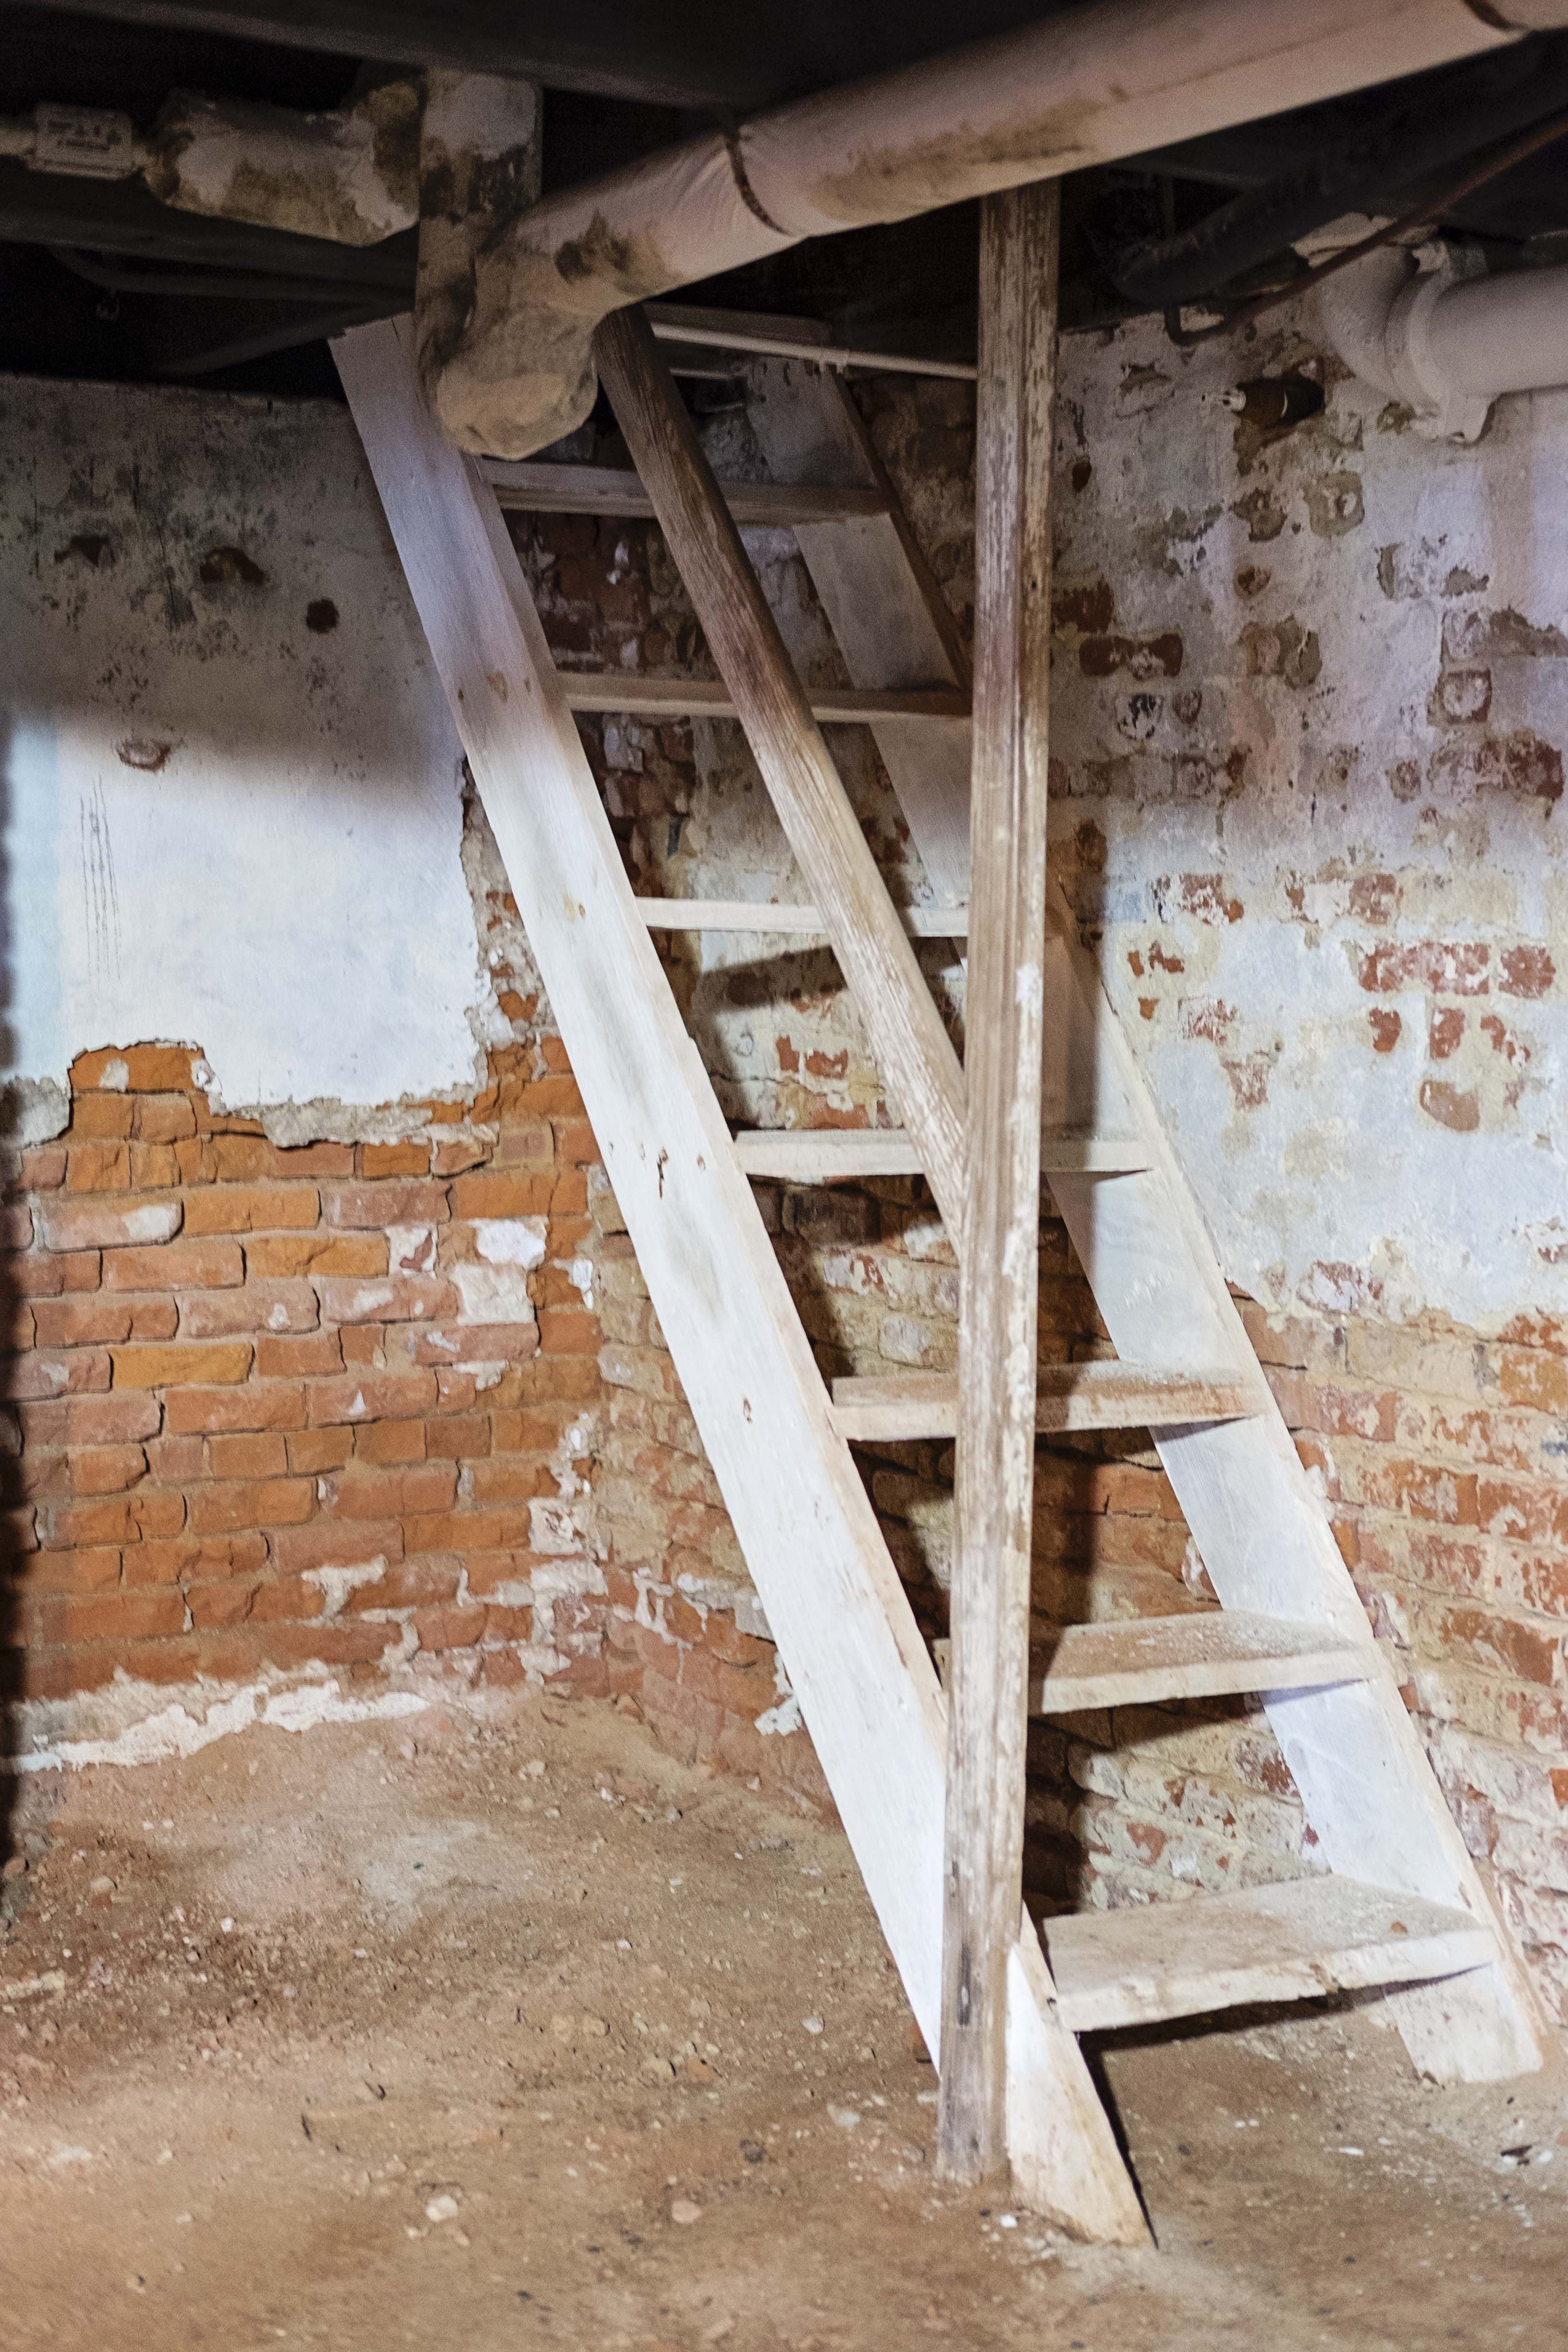 A small brick room on the lower level of the house served as the enslaved nanny's room. She would climb these wooden stairs in the corner of the room to enter the Prud'homme children's room above.